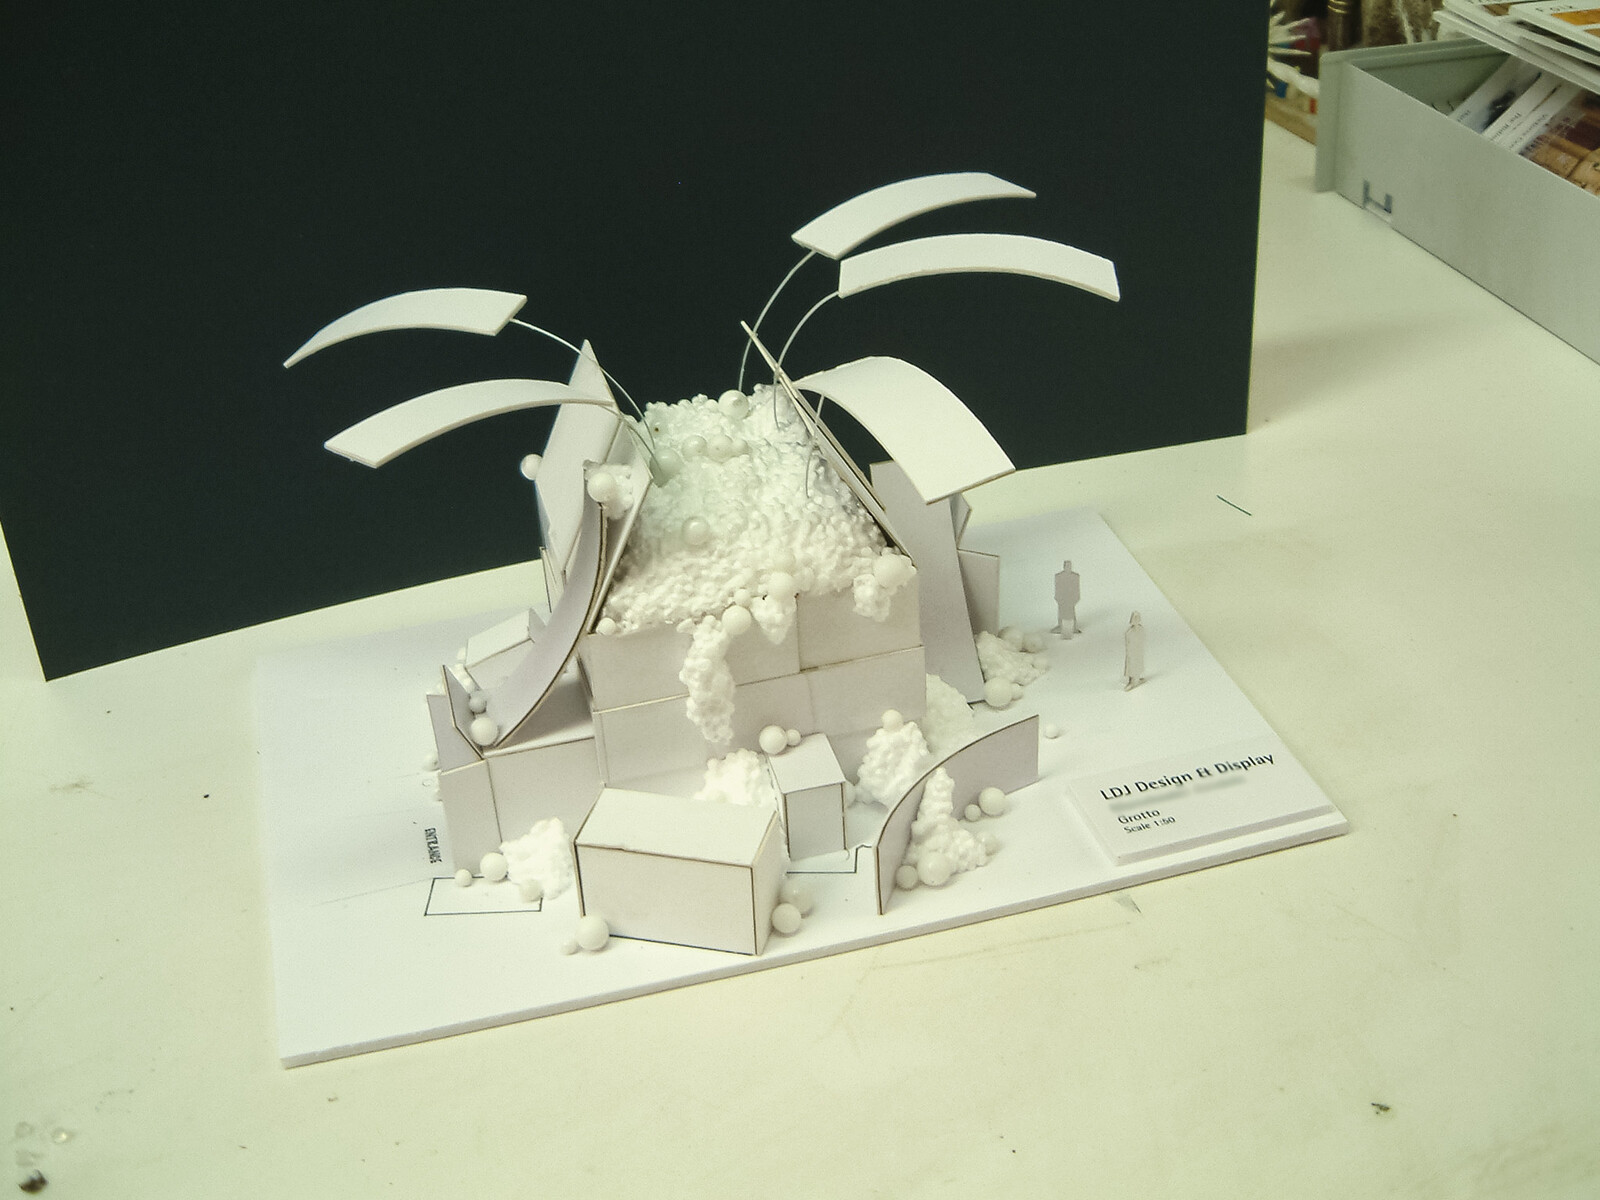 Christmas Decoration and Grotto Scale maquettes